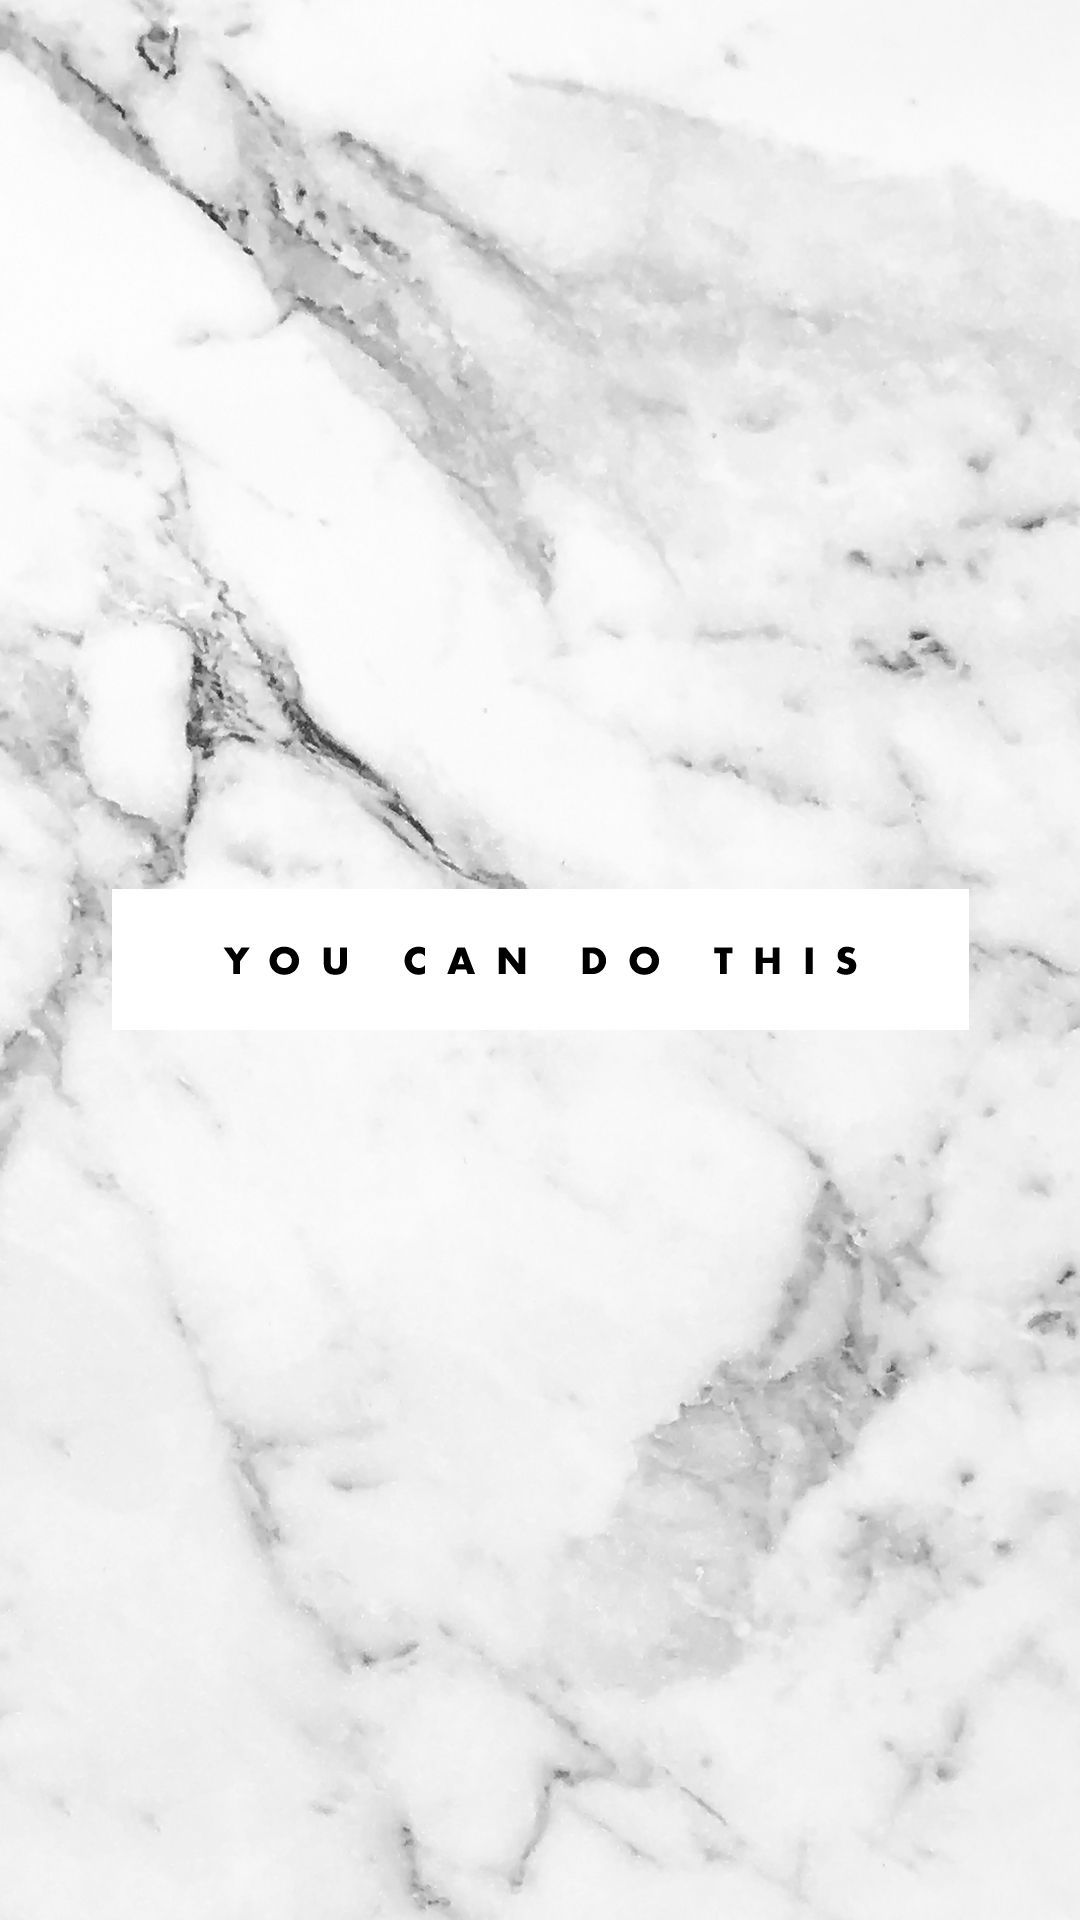 You can do this - Wallpapers amazing pretty wallpapers